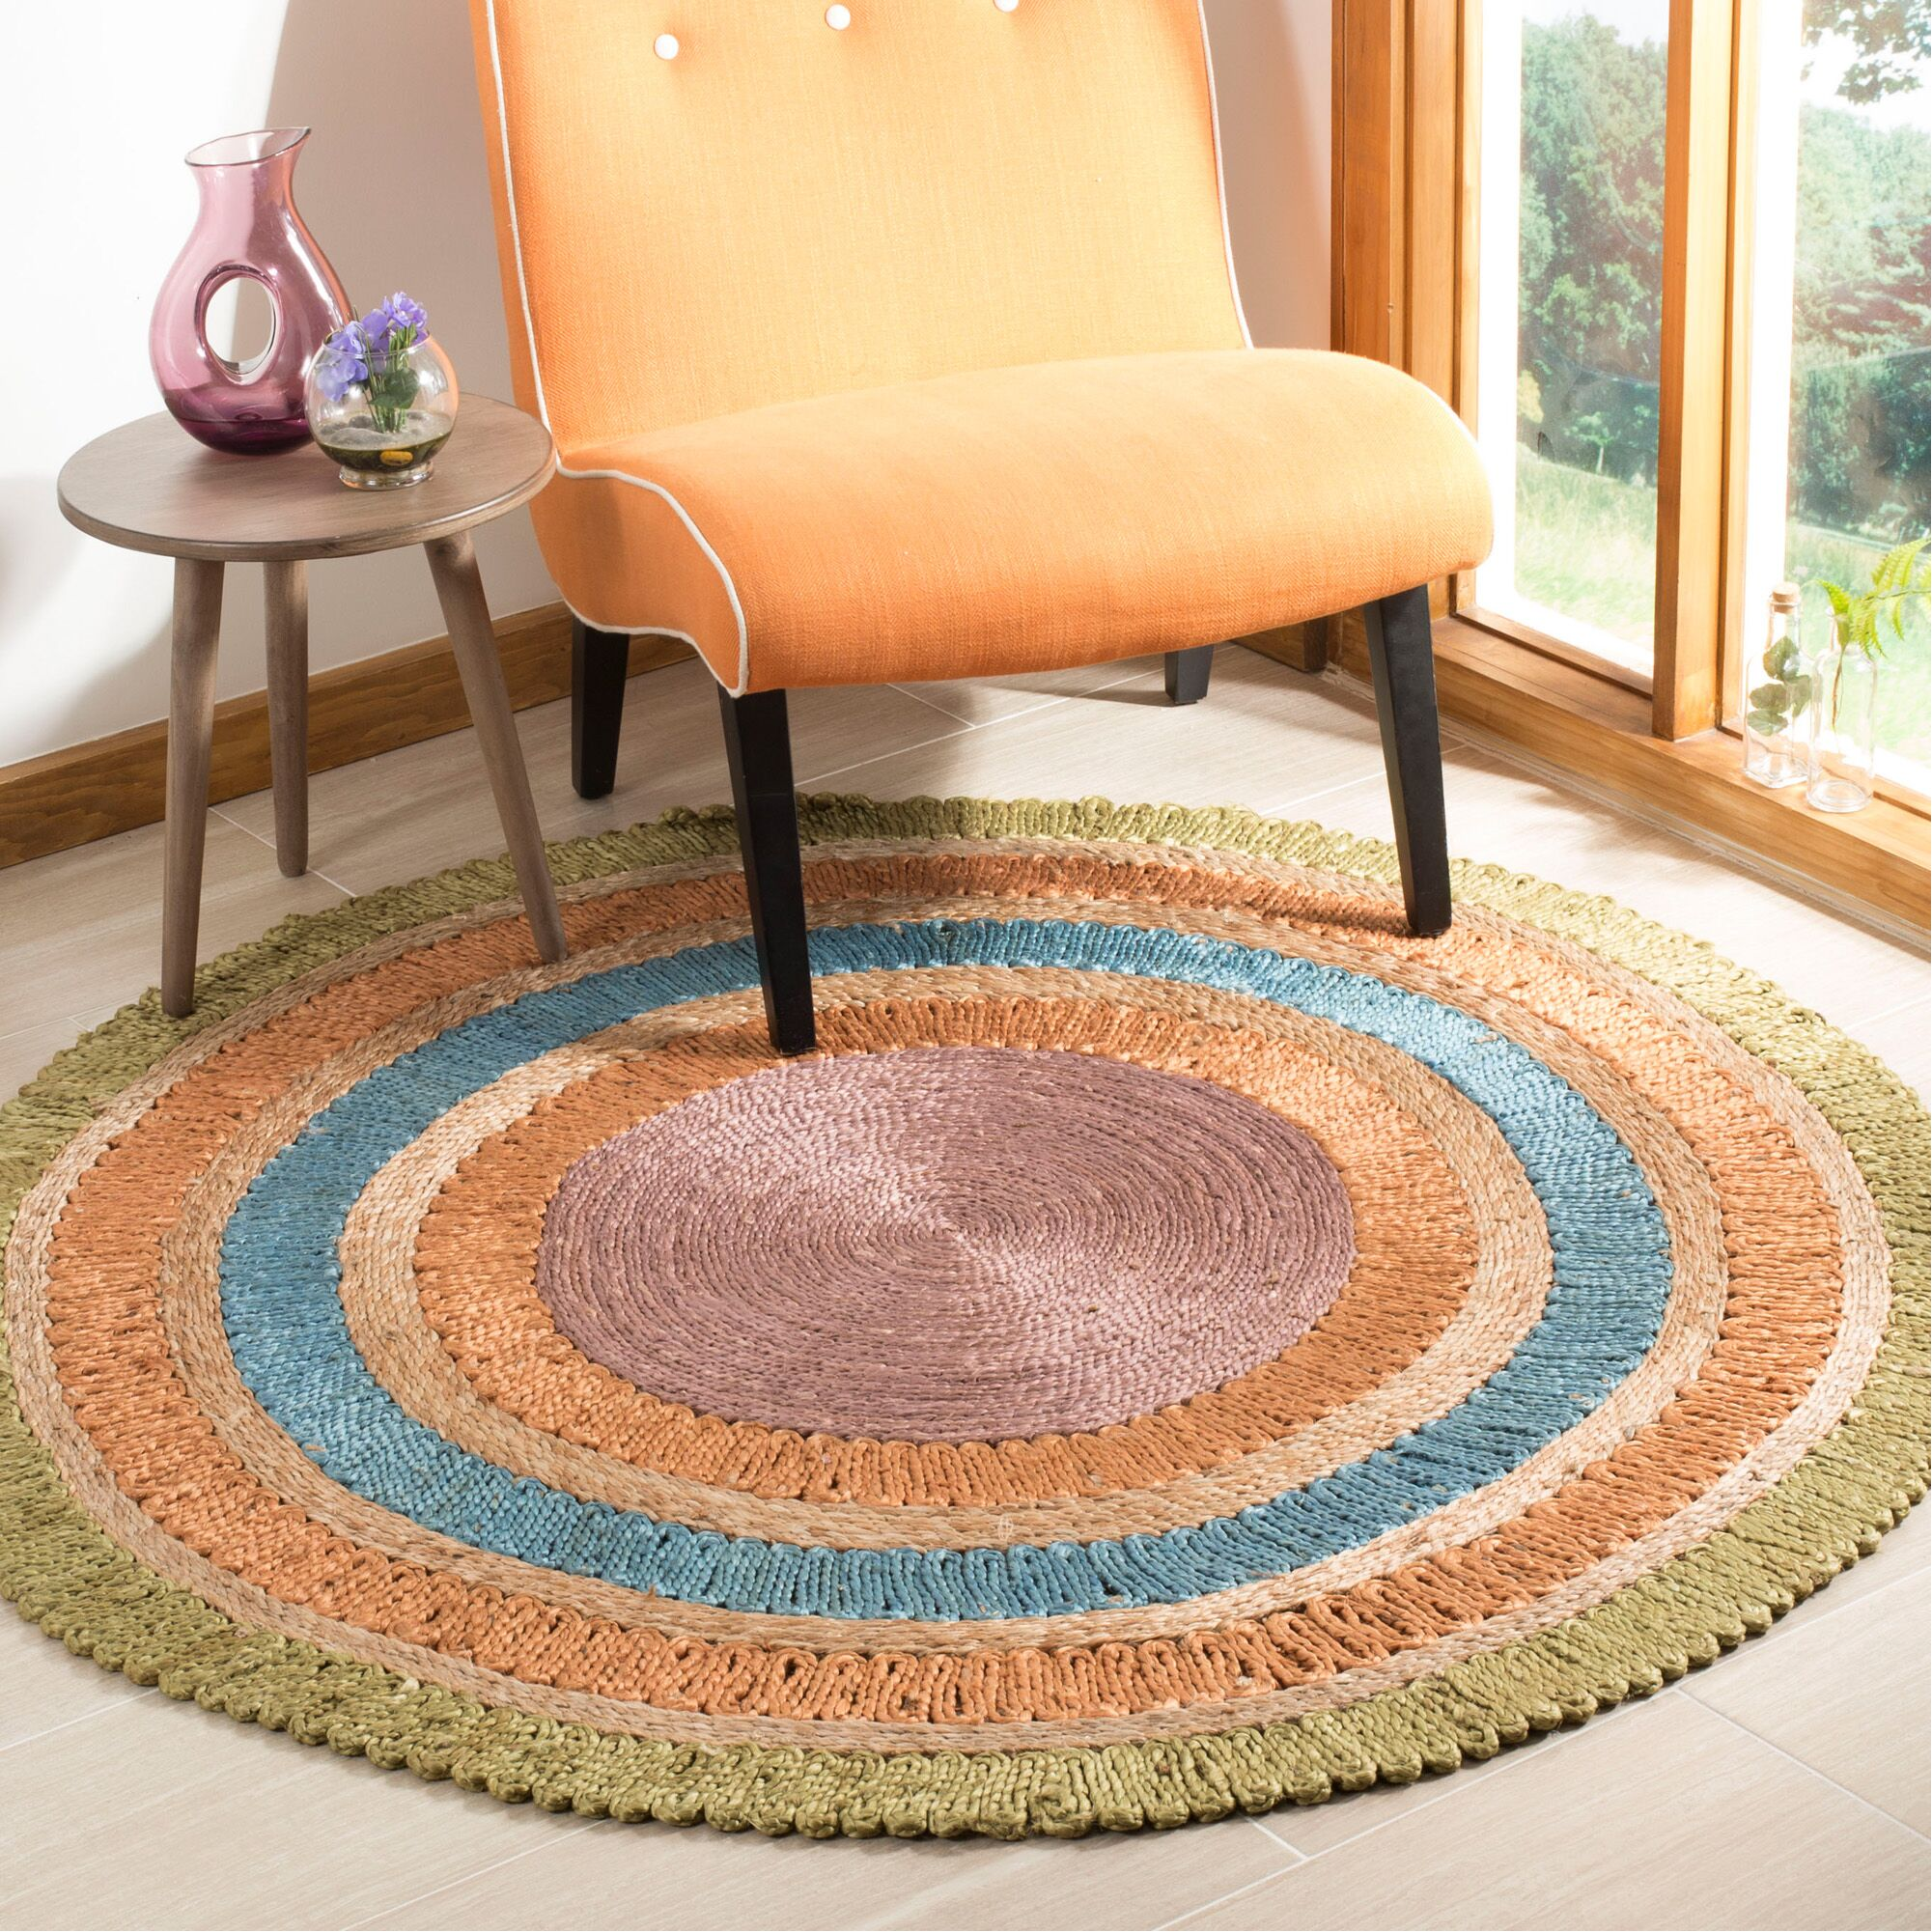 Castelnaud Natural Fiber Hand Tufted Green/Blue/Orange Area Rug  Rug Size: Round 7'